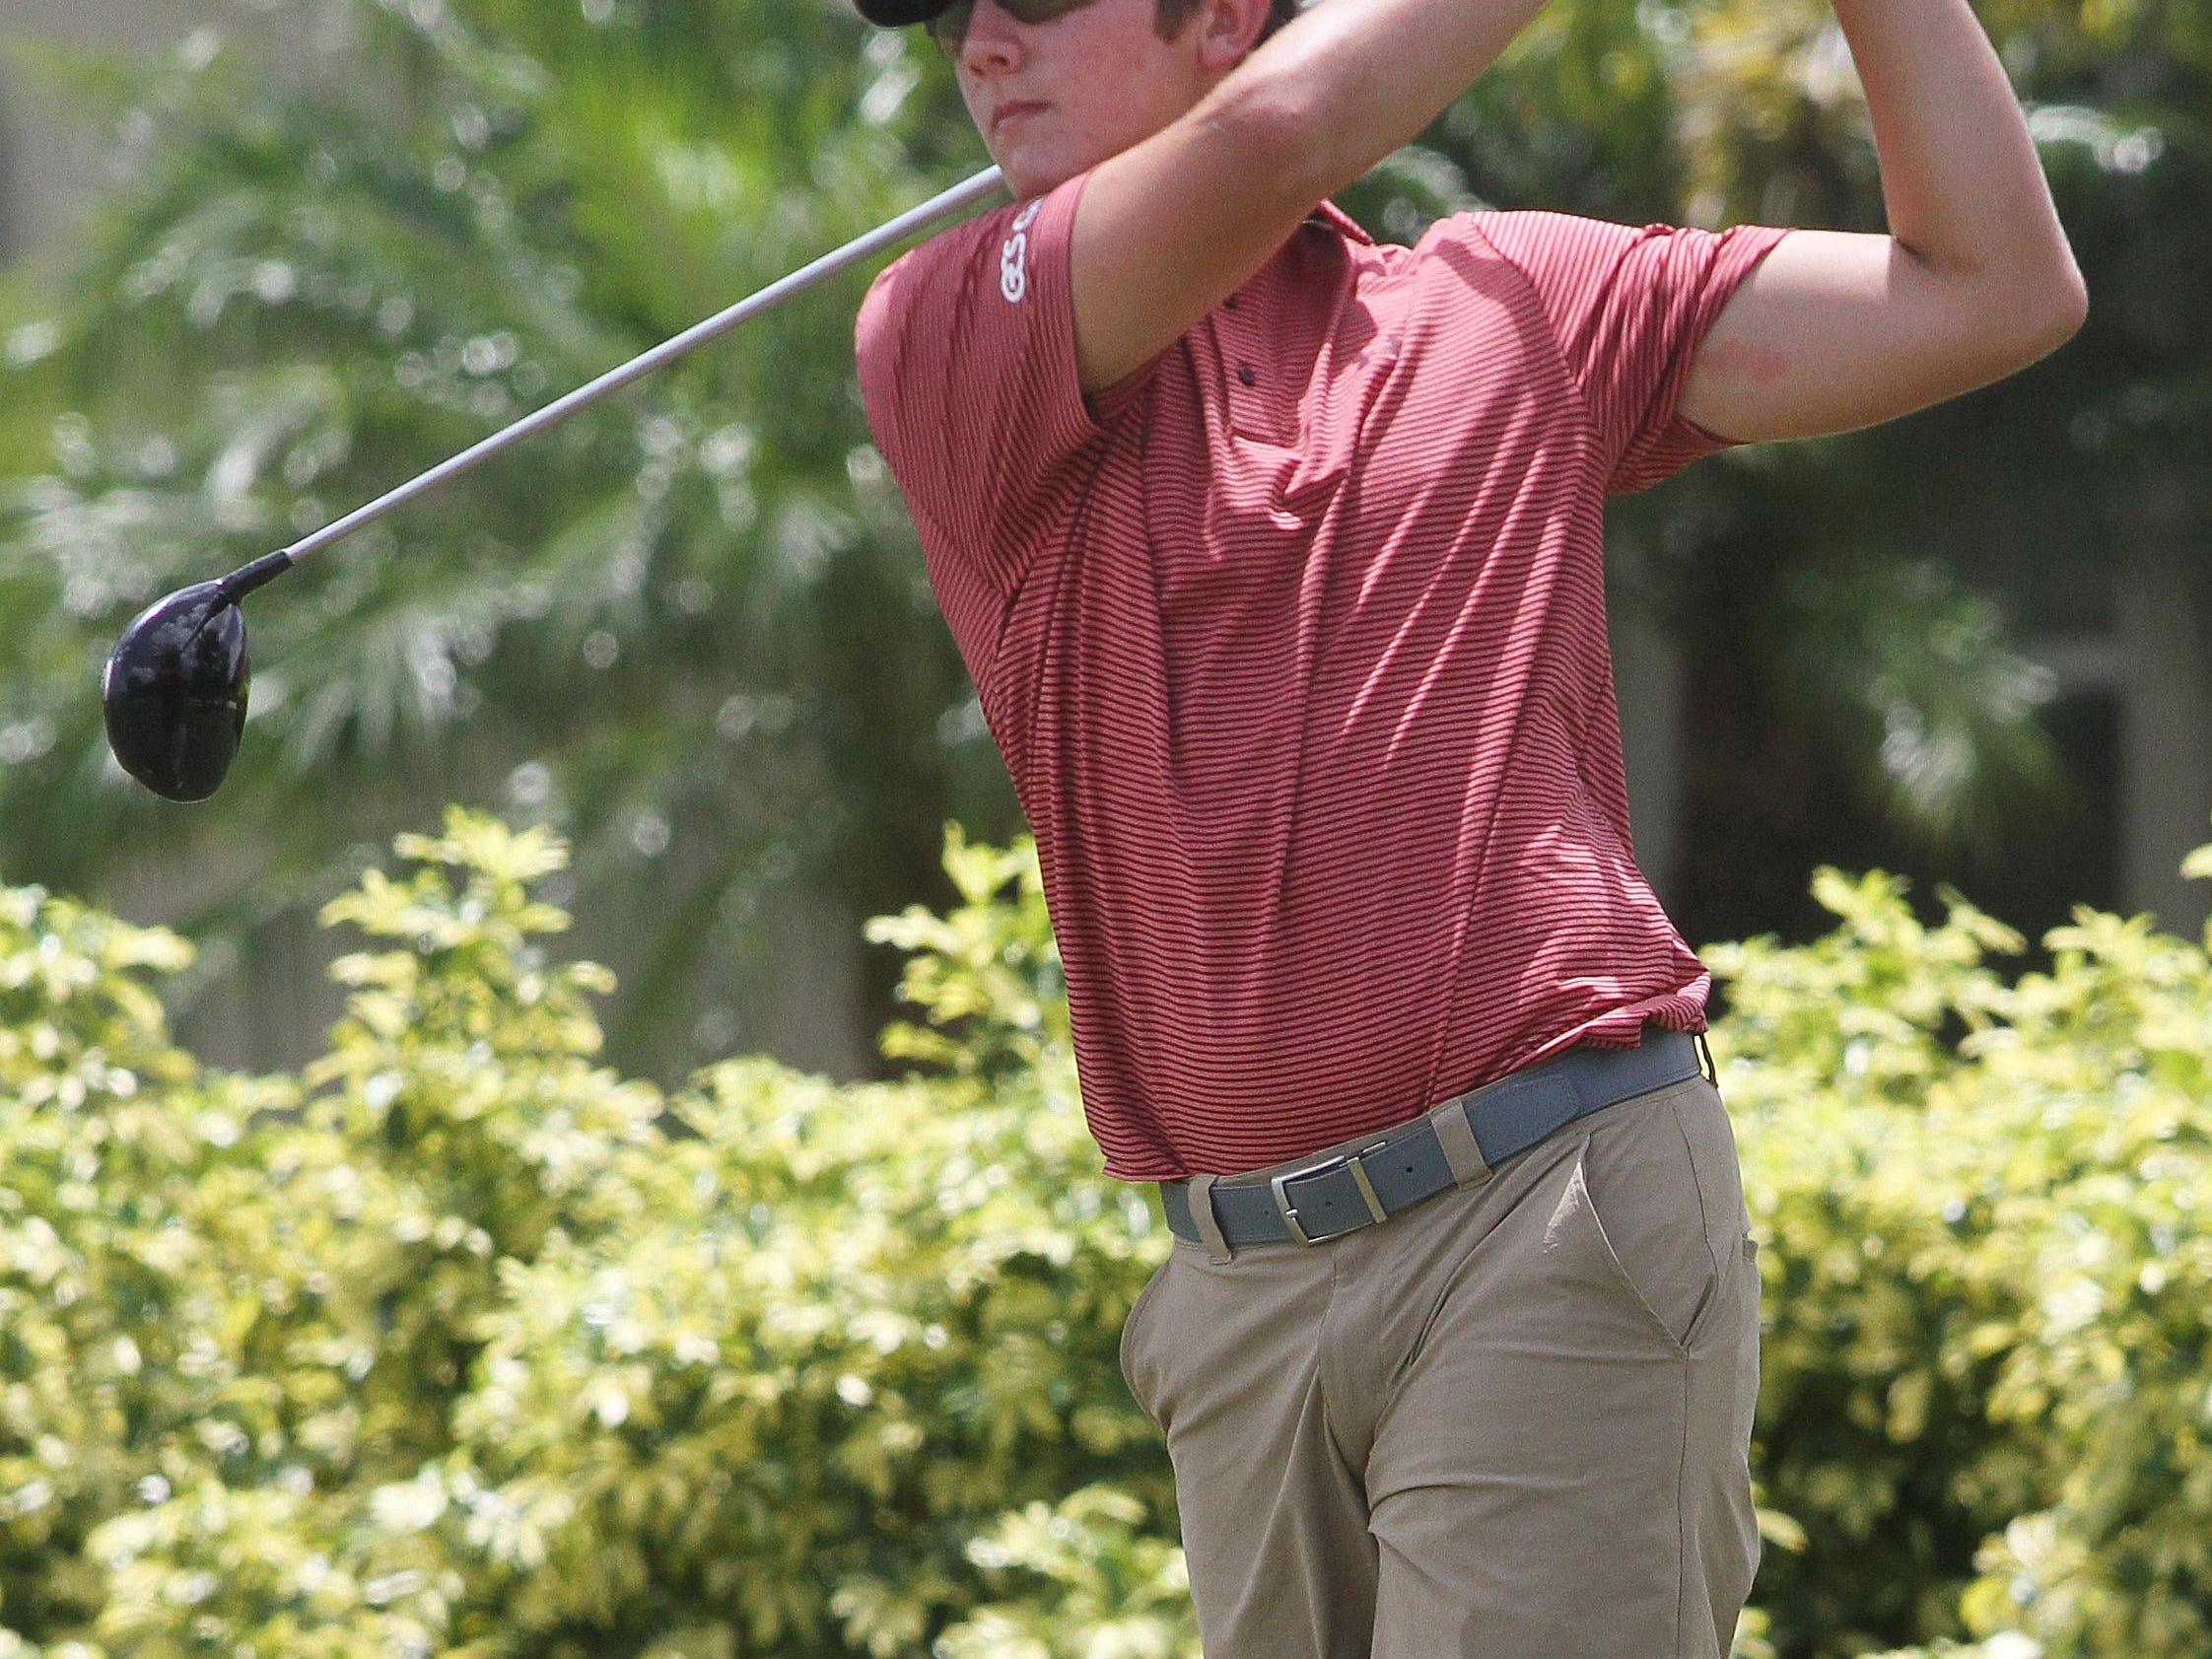 ECS golfer Shane Reynolds tees off on the 2nd hole while practicing at the Verandah Golf Club on Saturday.